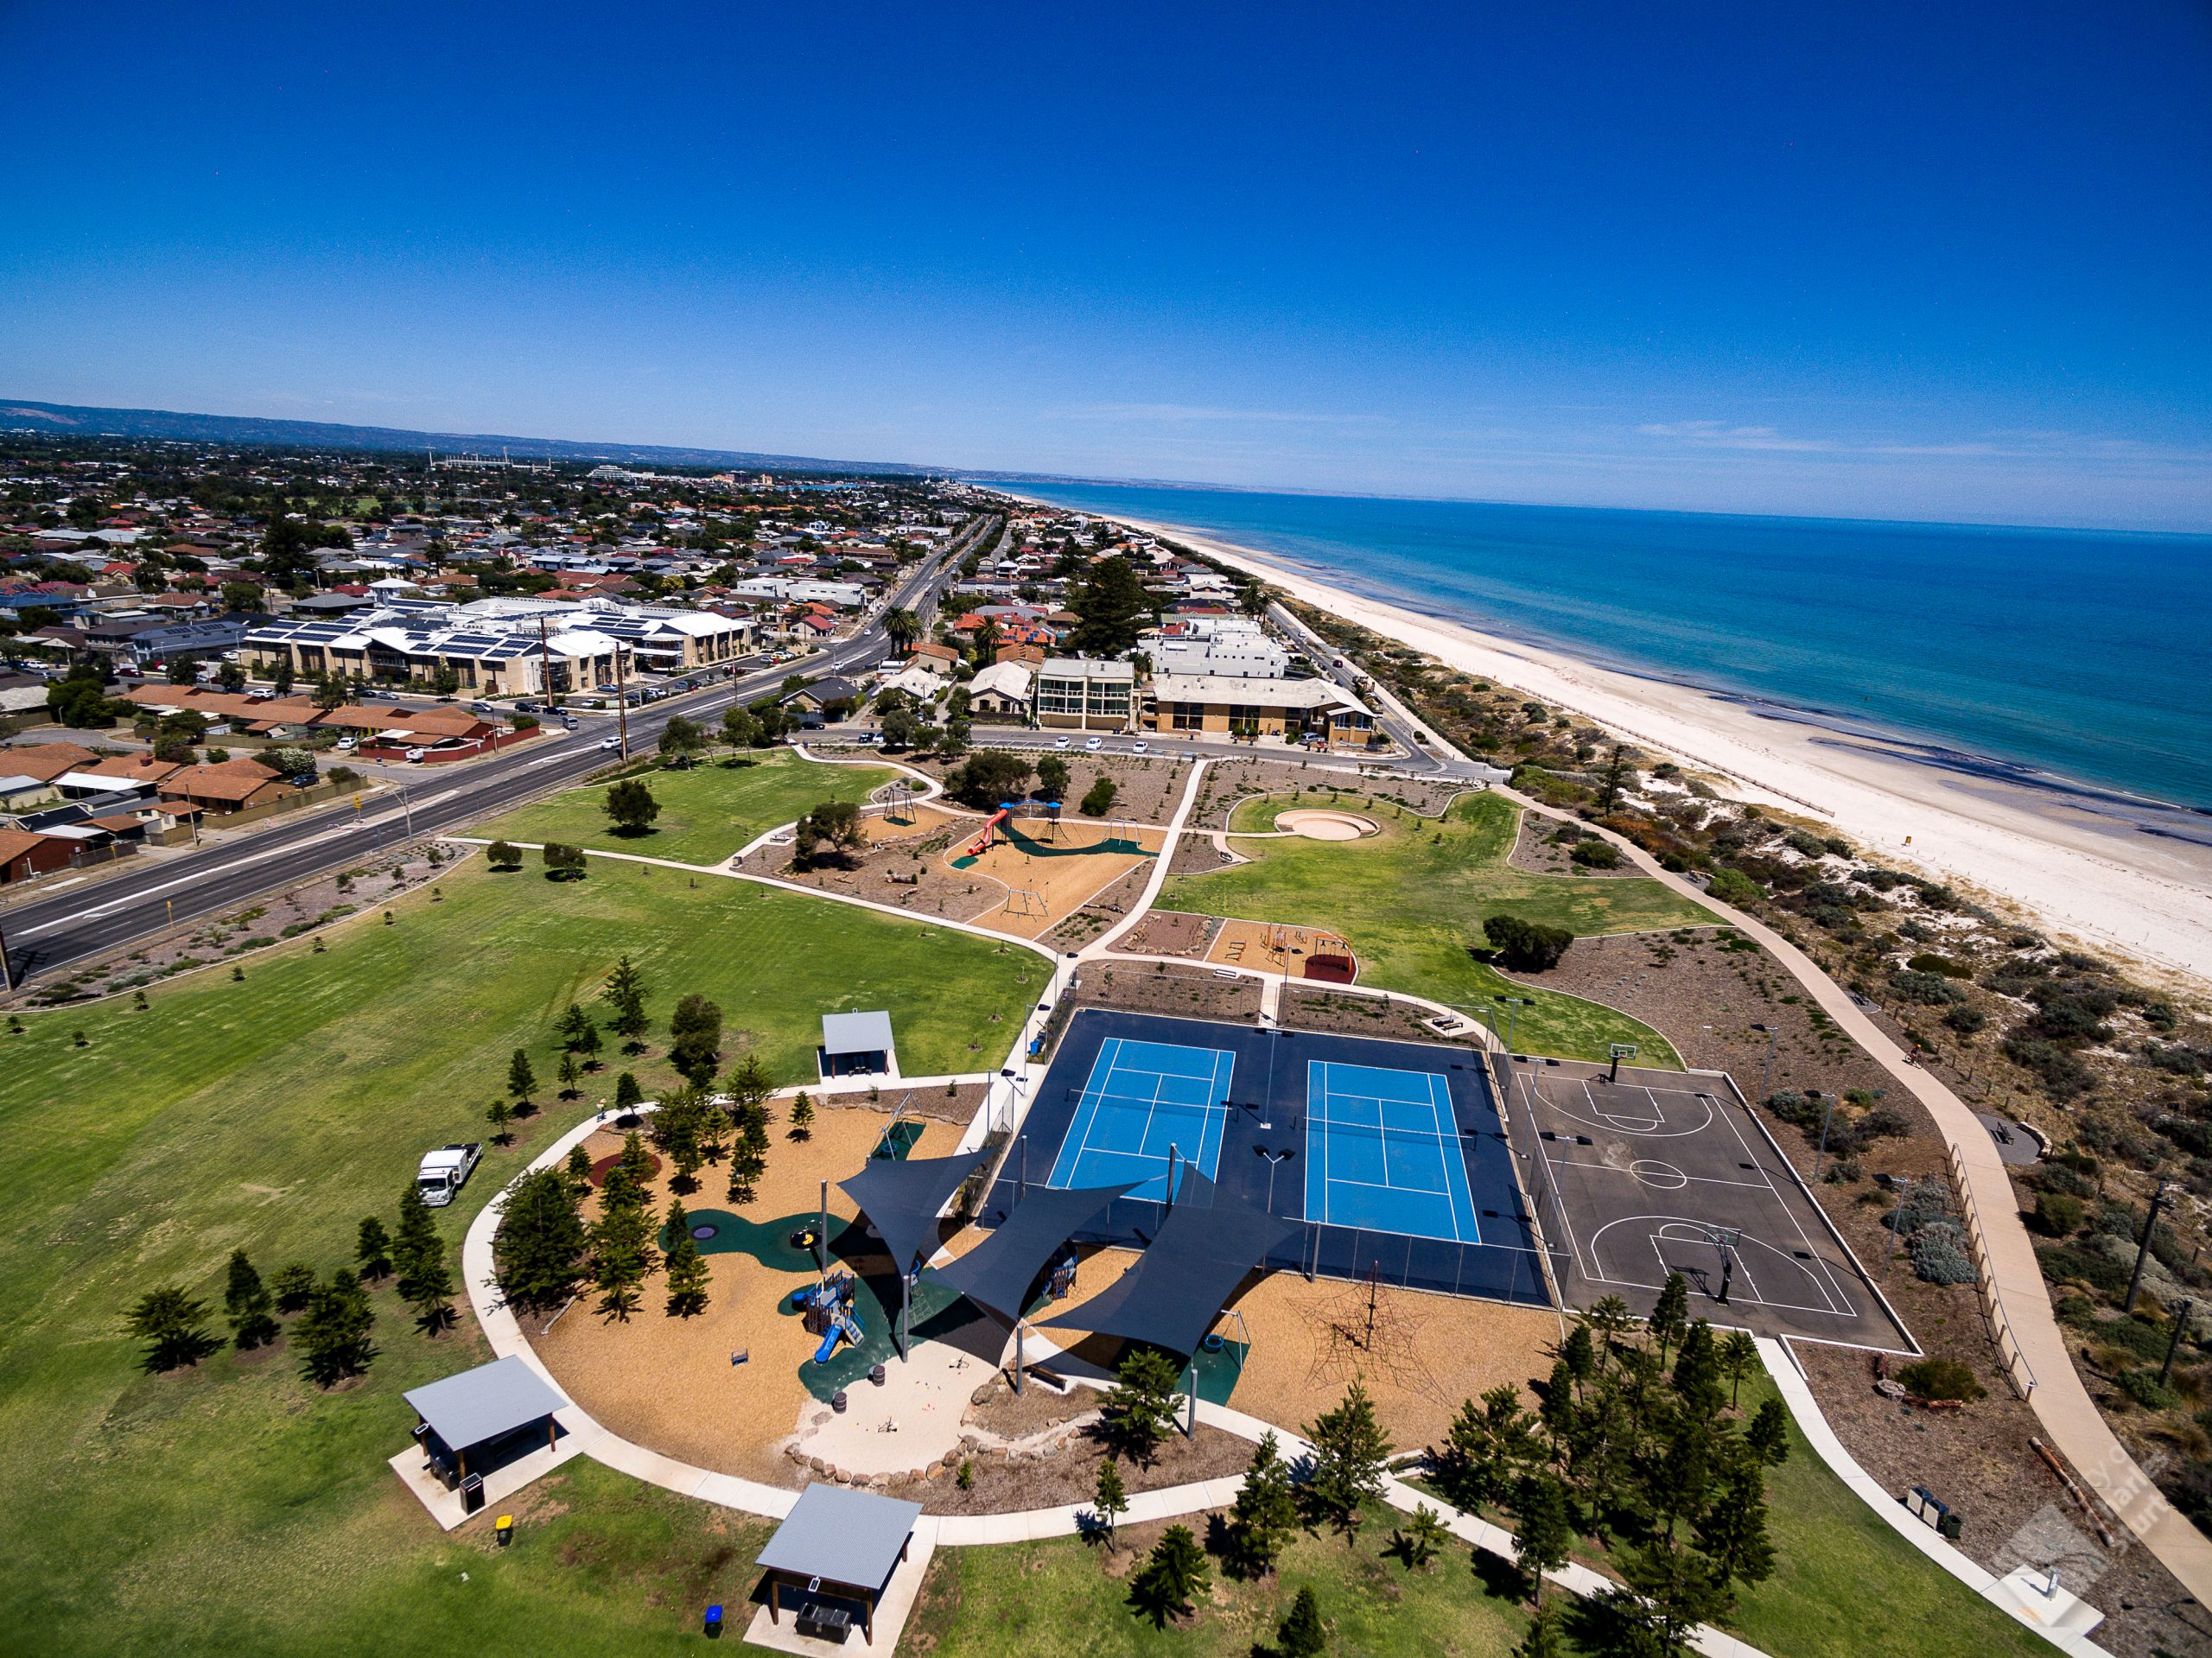 Aerial photo of Point Malcolm Reserve and surrounding area